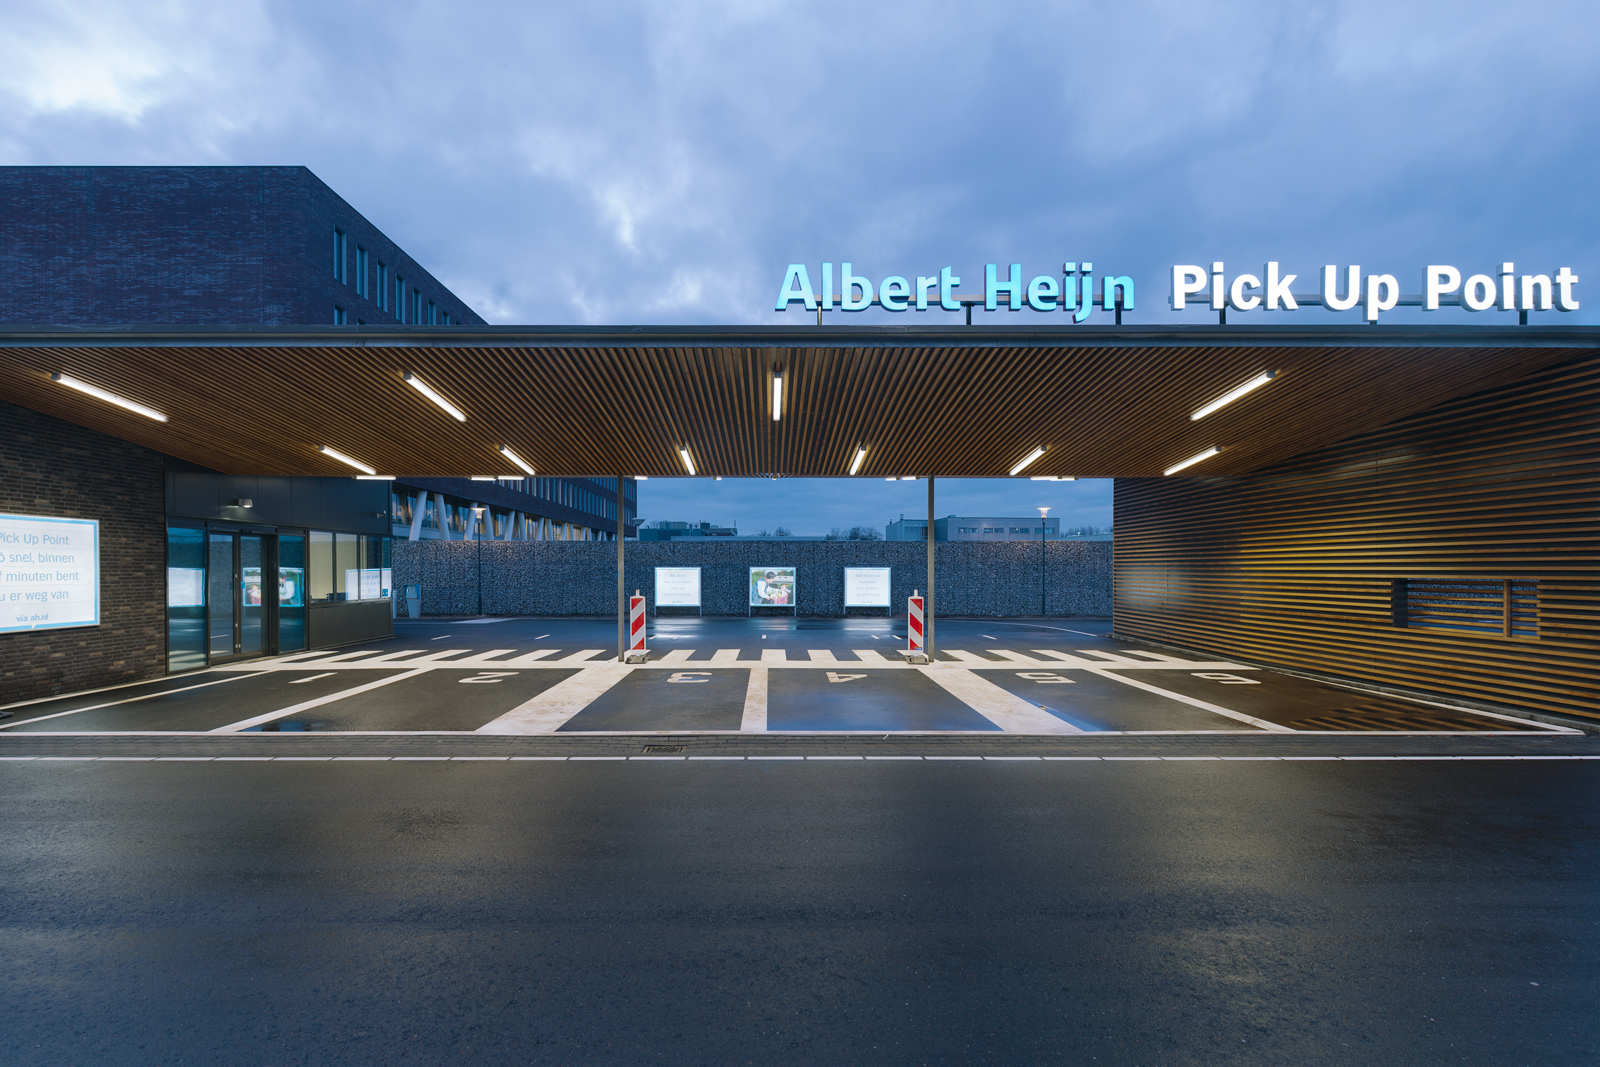 Albert Heijn, Pick Up Point  / Assignment at BLINK / Project: Pick Up Point / Role in project: Creative Director